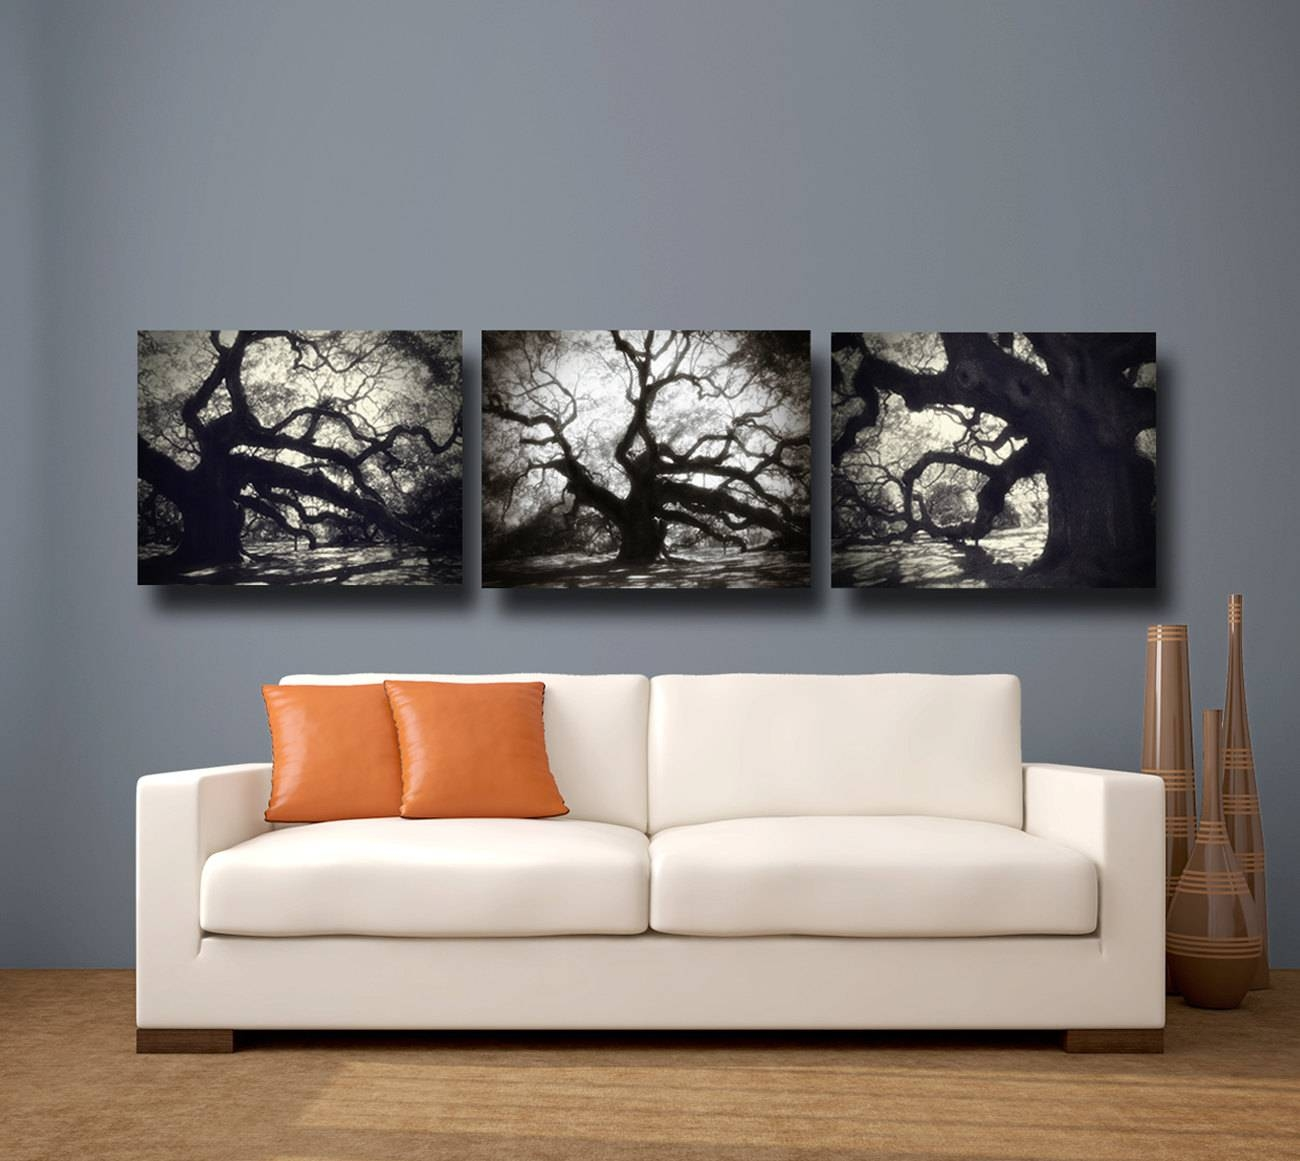 Wall Art Designs: Wall Canvas Art On Demand Free Printable Cheap Within Best And Newest Cheap Big Wall Art (View 10 of 20)